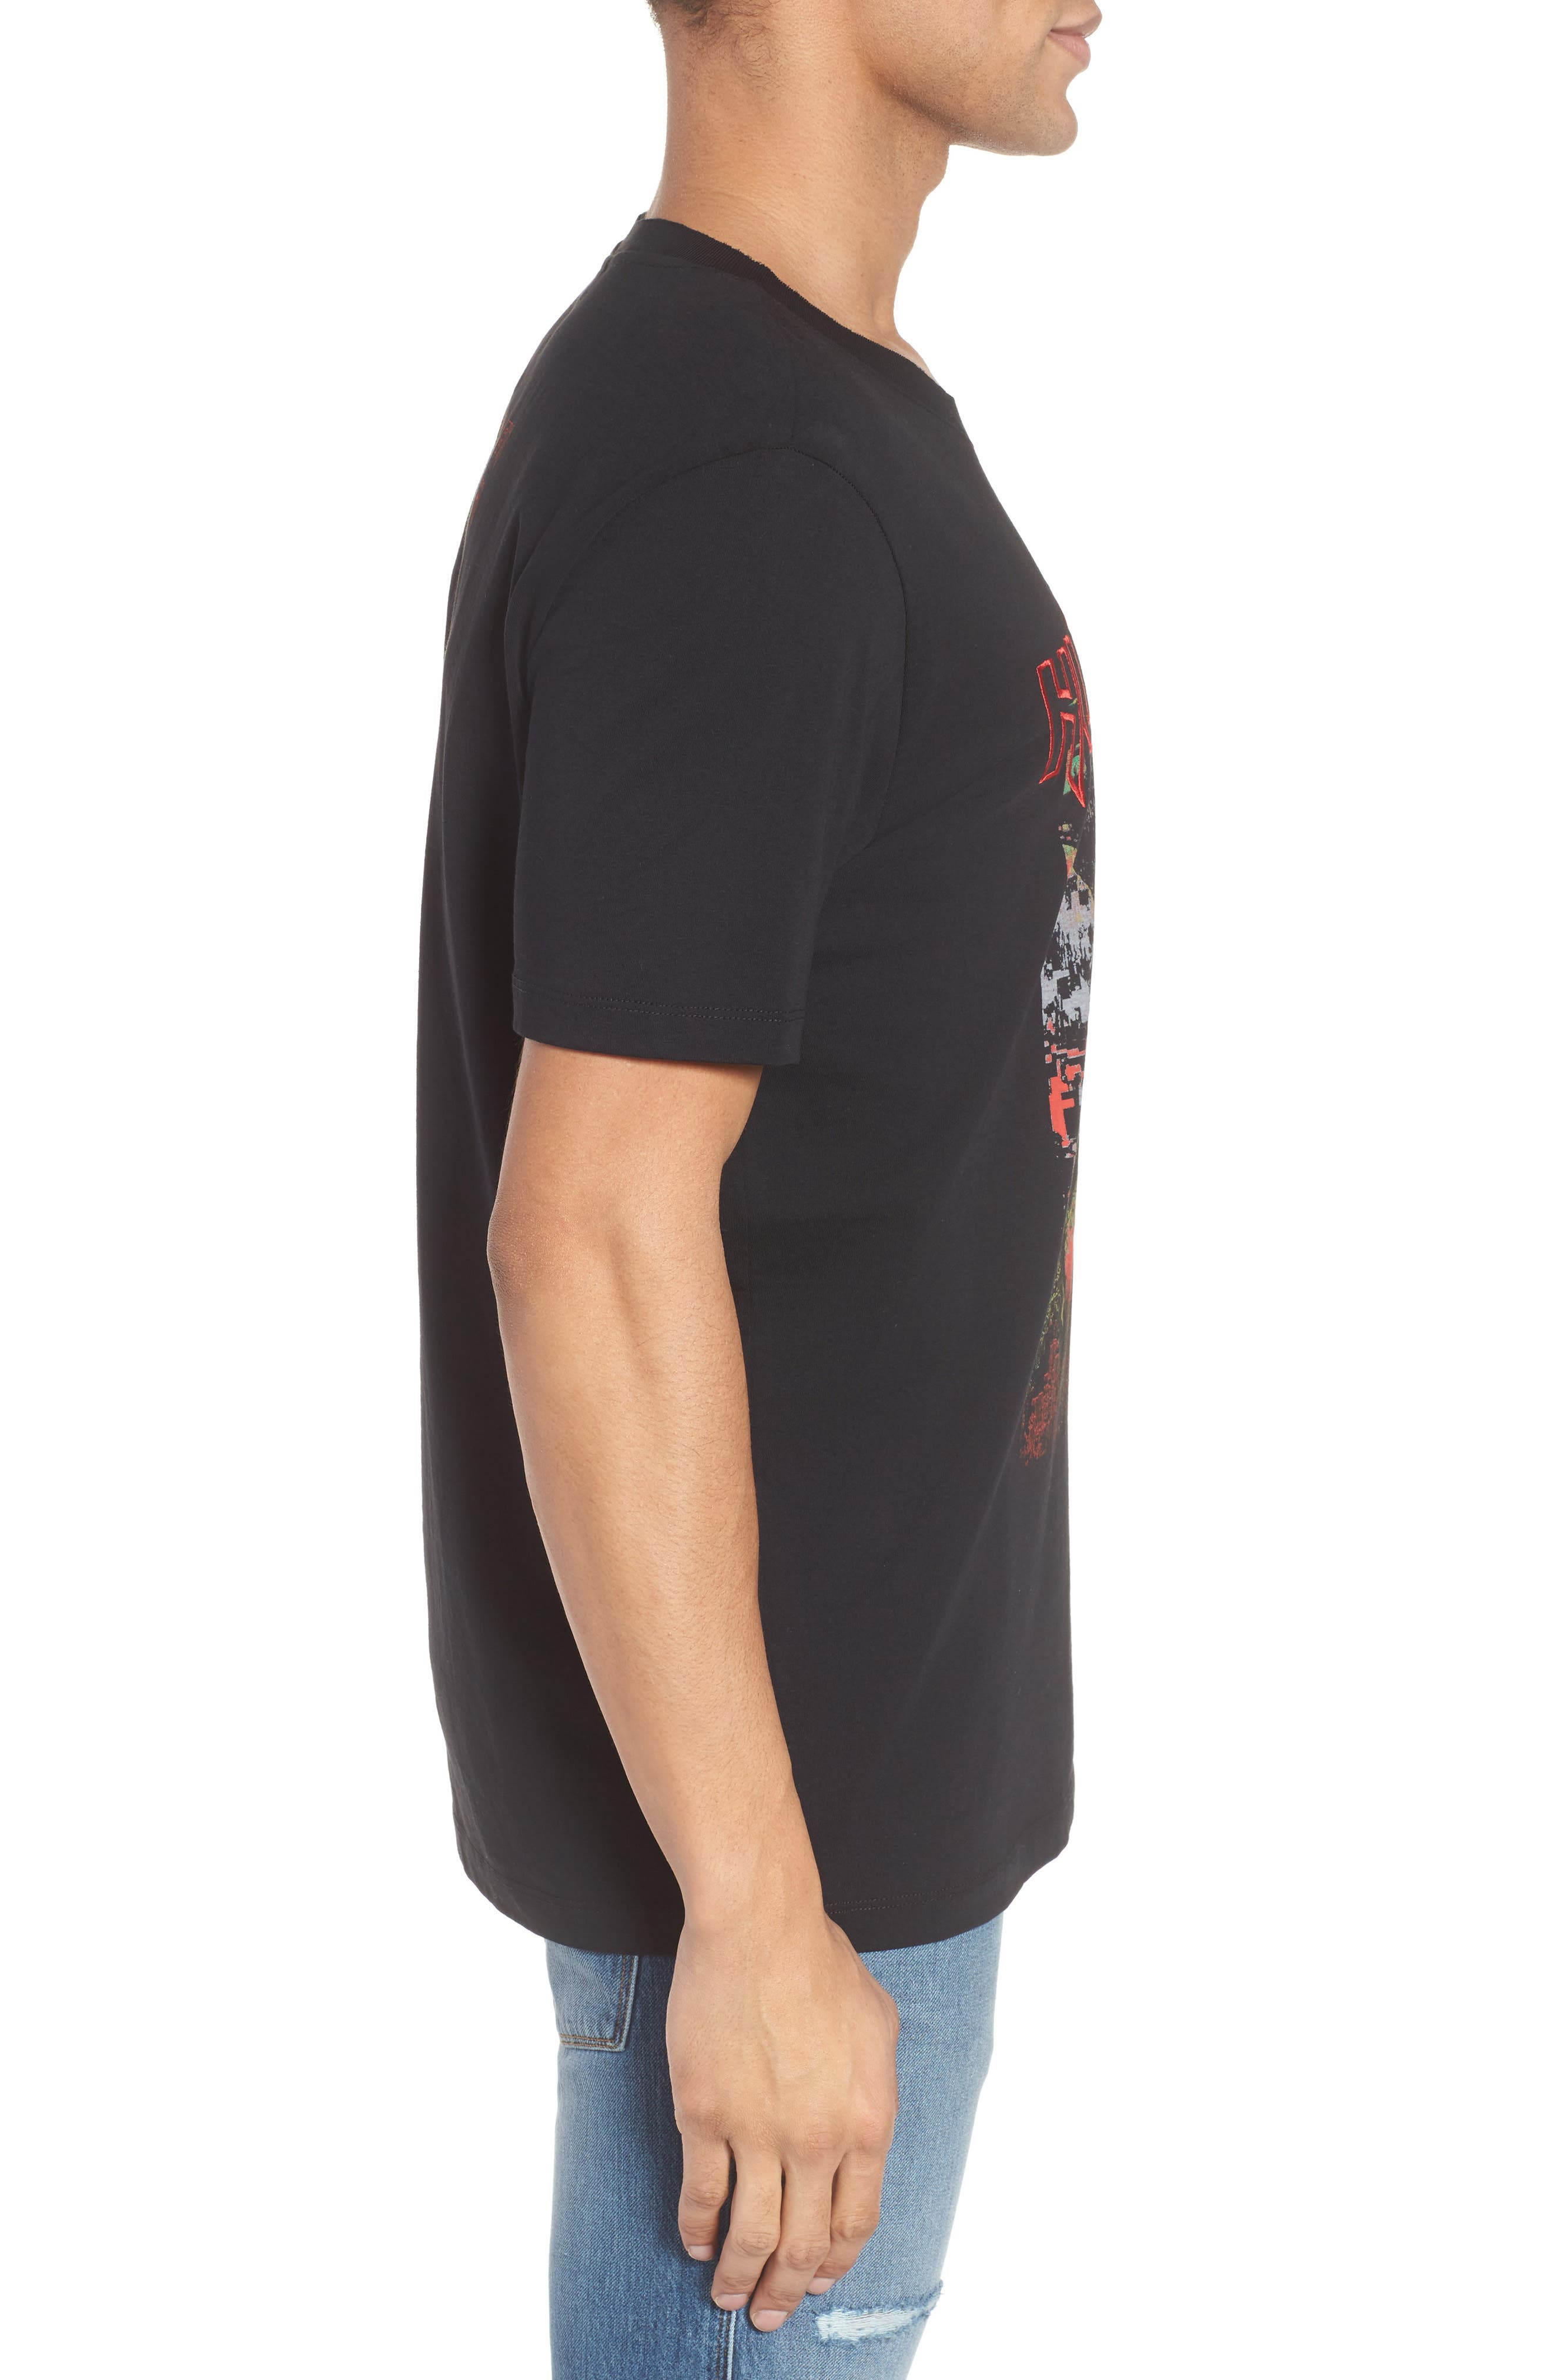 Detallic Embroidered Graphic T-Shirt,                             Alternate thumbnail 3, color,                             001